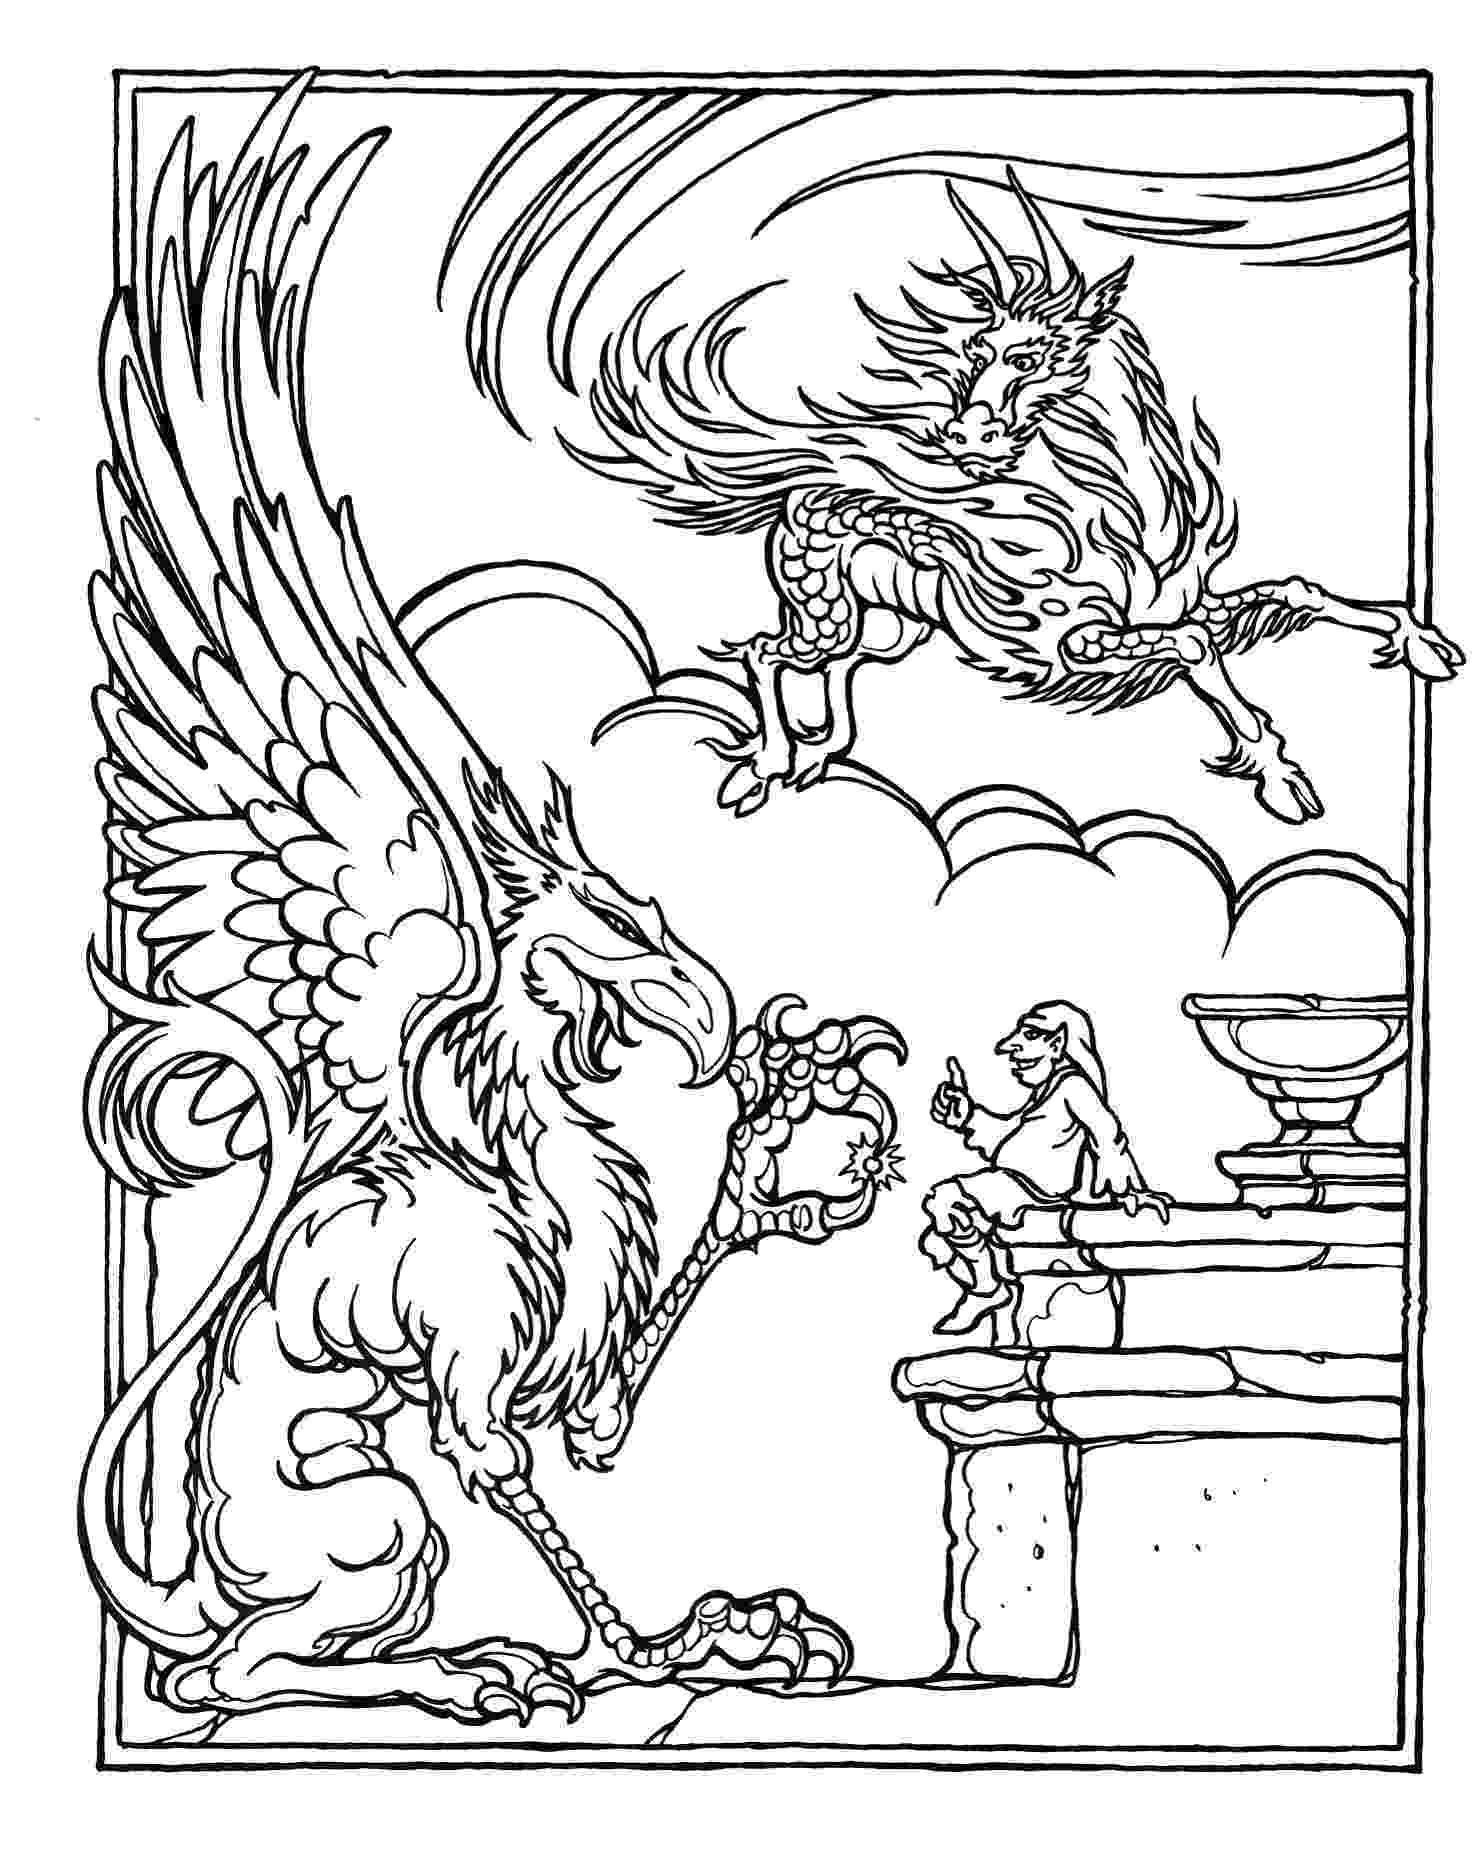 dragon coloring sheet monster brains the official advanced dungeons and dragons sheet dragon coloring